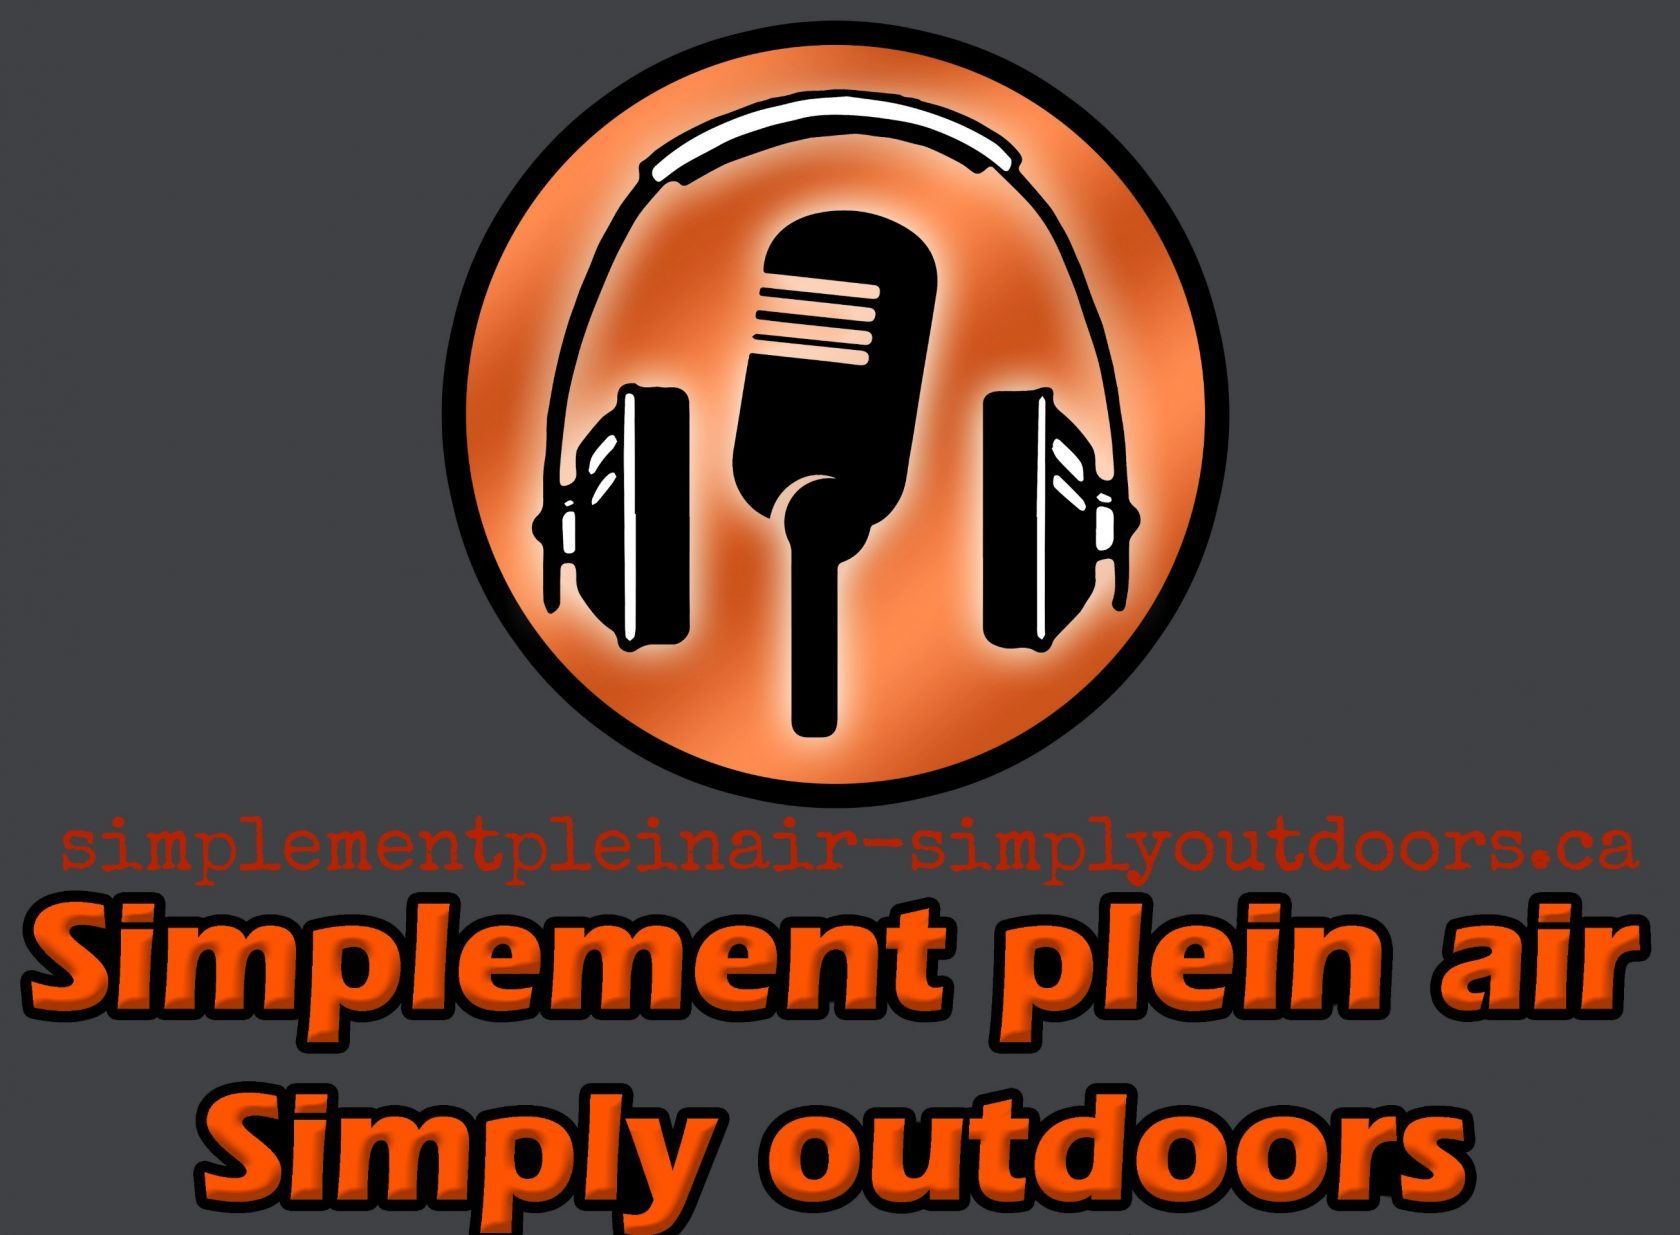 cropped-cropped-Simplement-plein-air-logo-V2-1.jpg